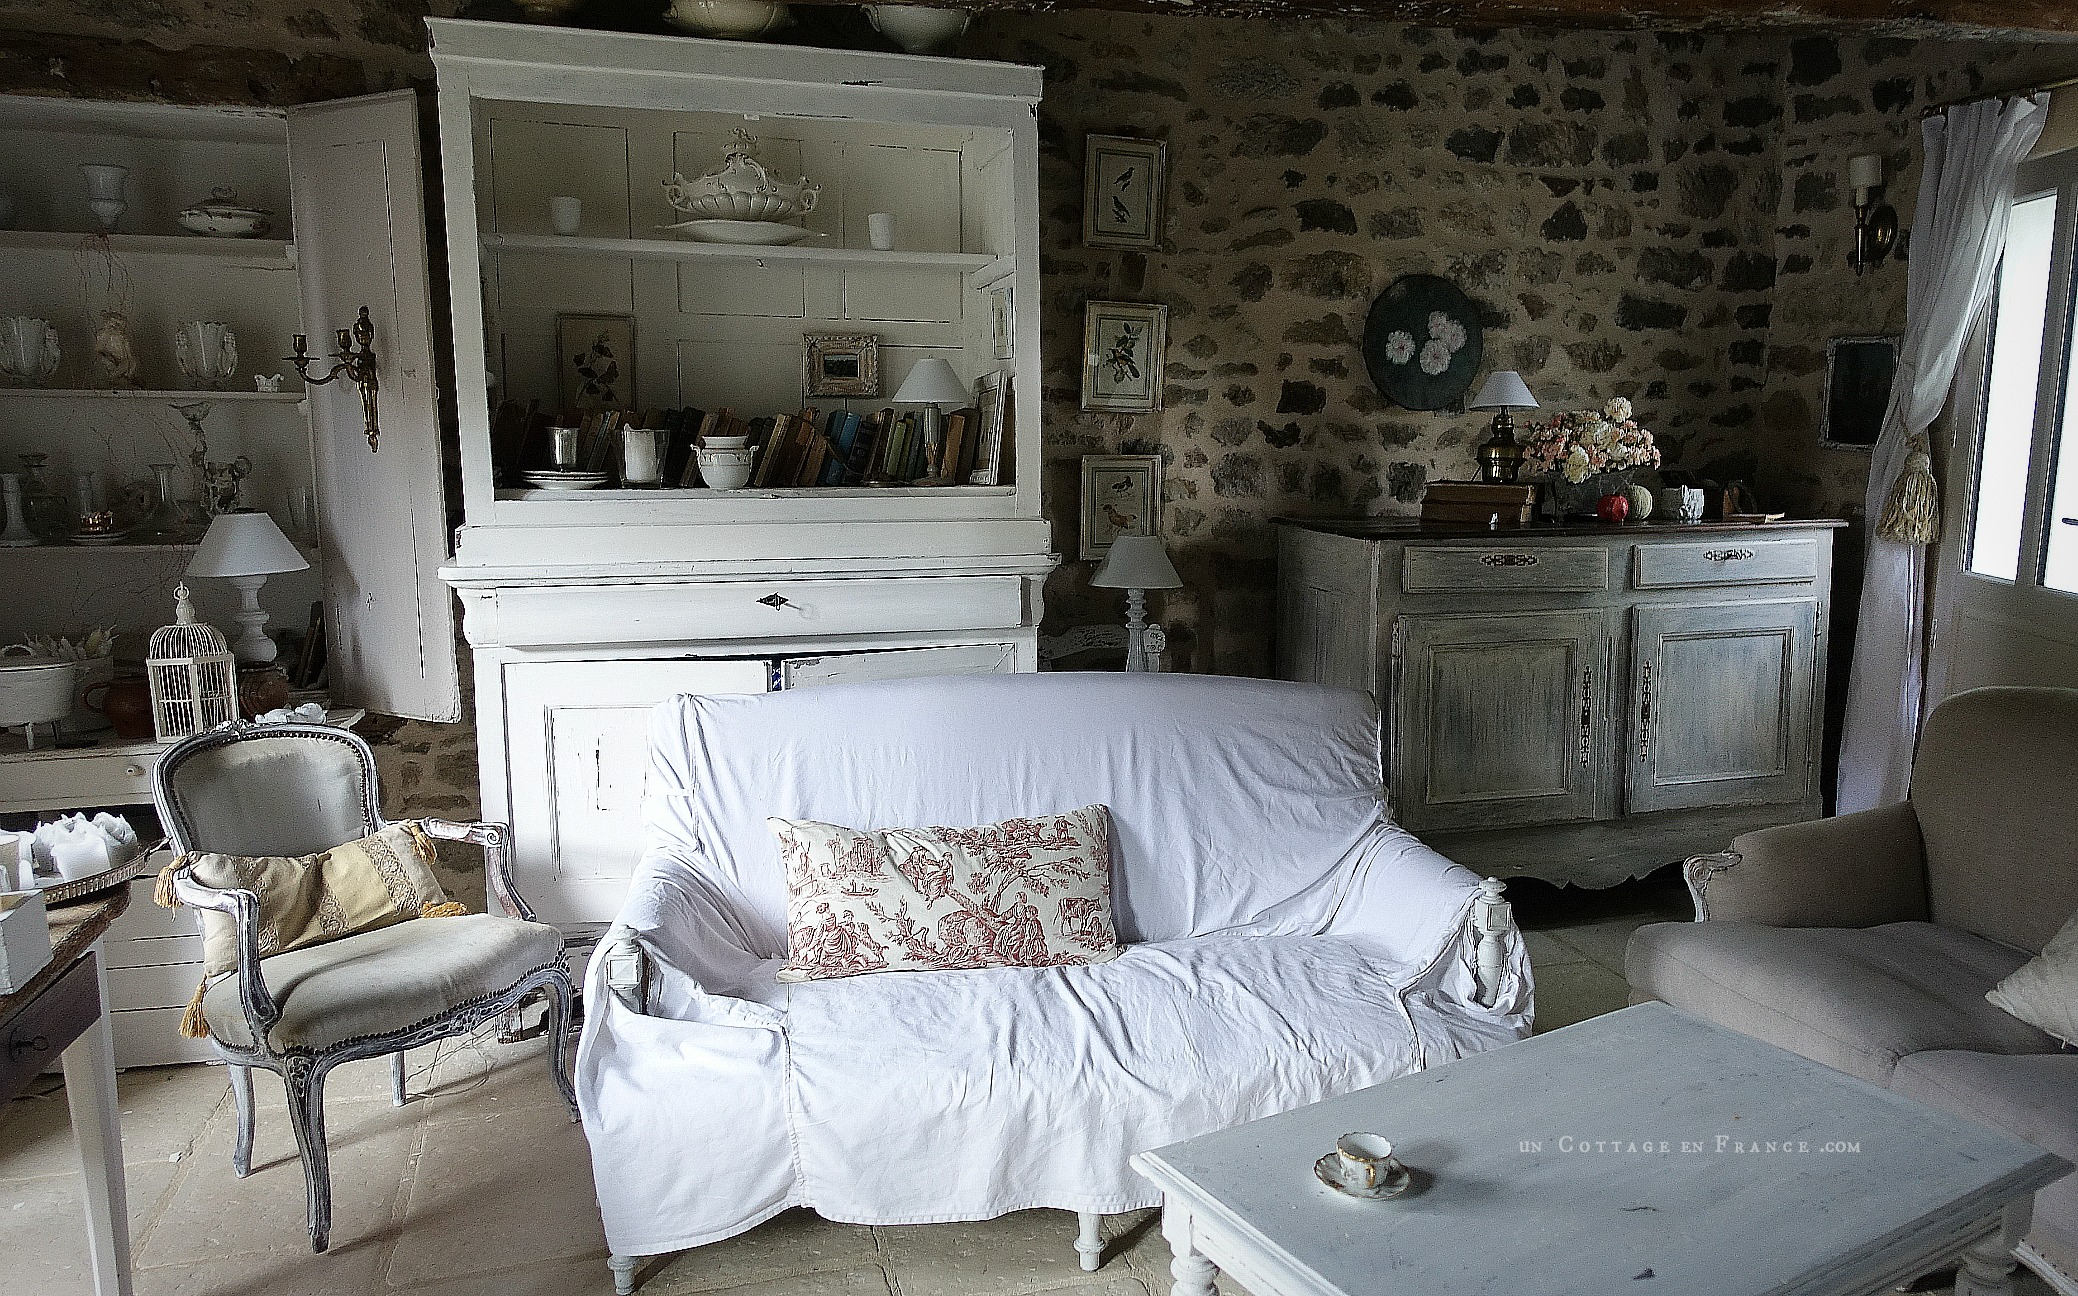 Début de relooking campagne chic d'un buffet régional (Beginning of a regional sideboard country chic makeover)